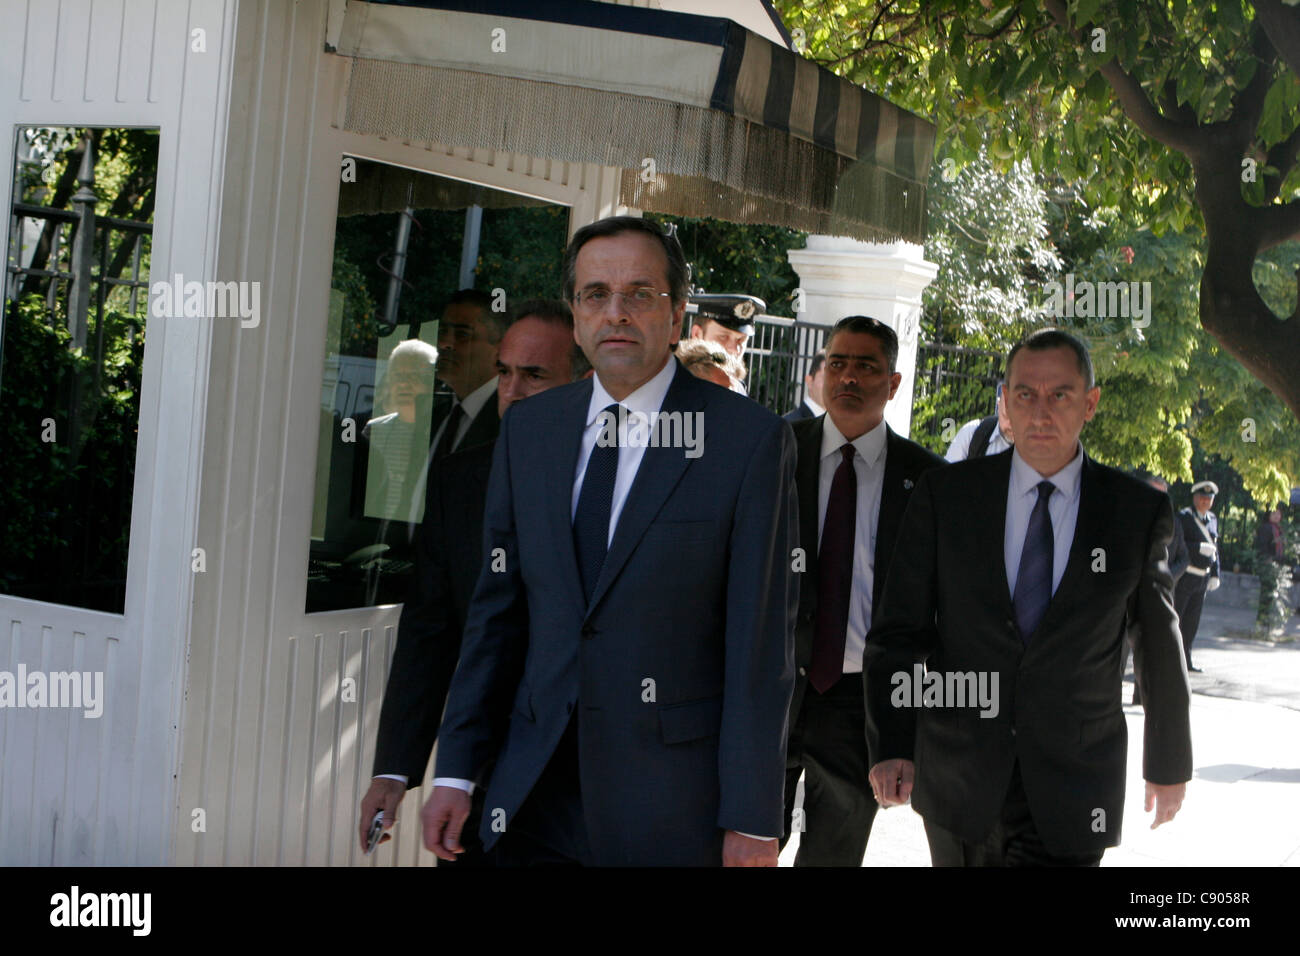 6 November 2011 Athens Greece. Conservative opposition leader Antonis Samaras exists Presidential house after meeting - Stock Image